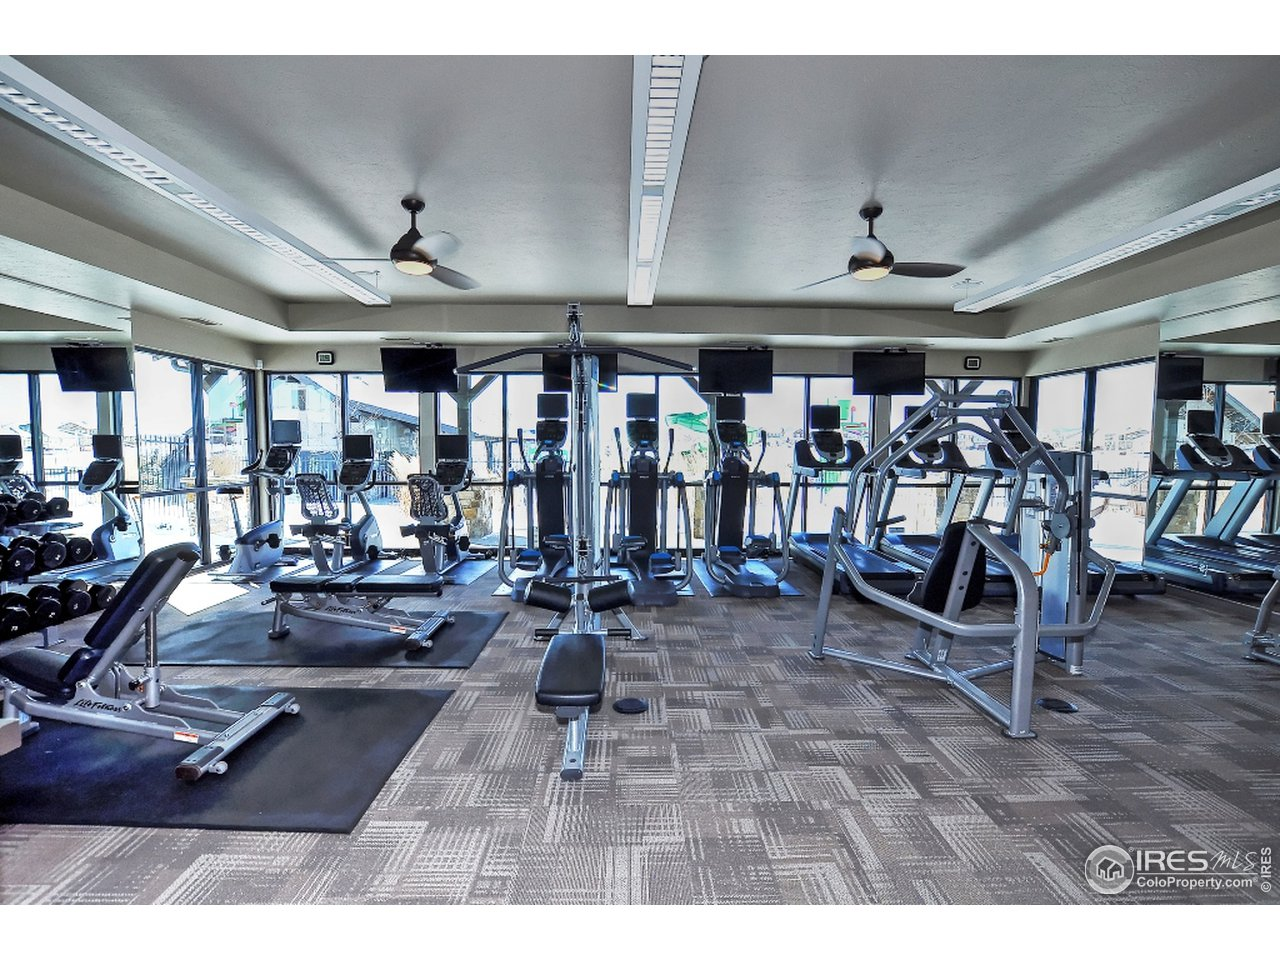 Gym space in clubhouse